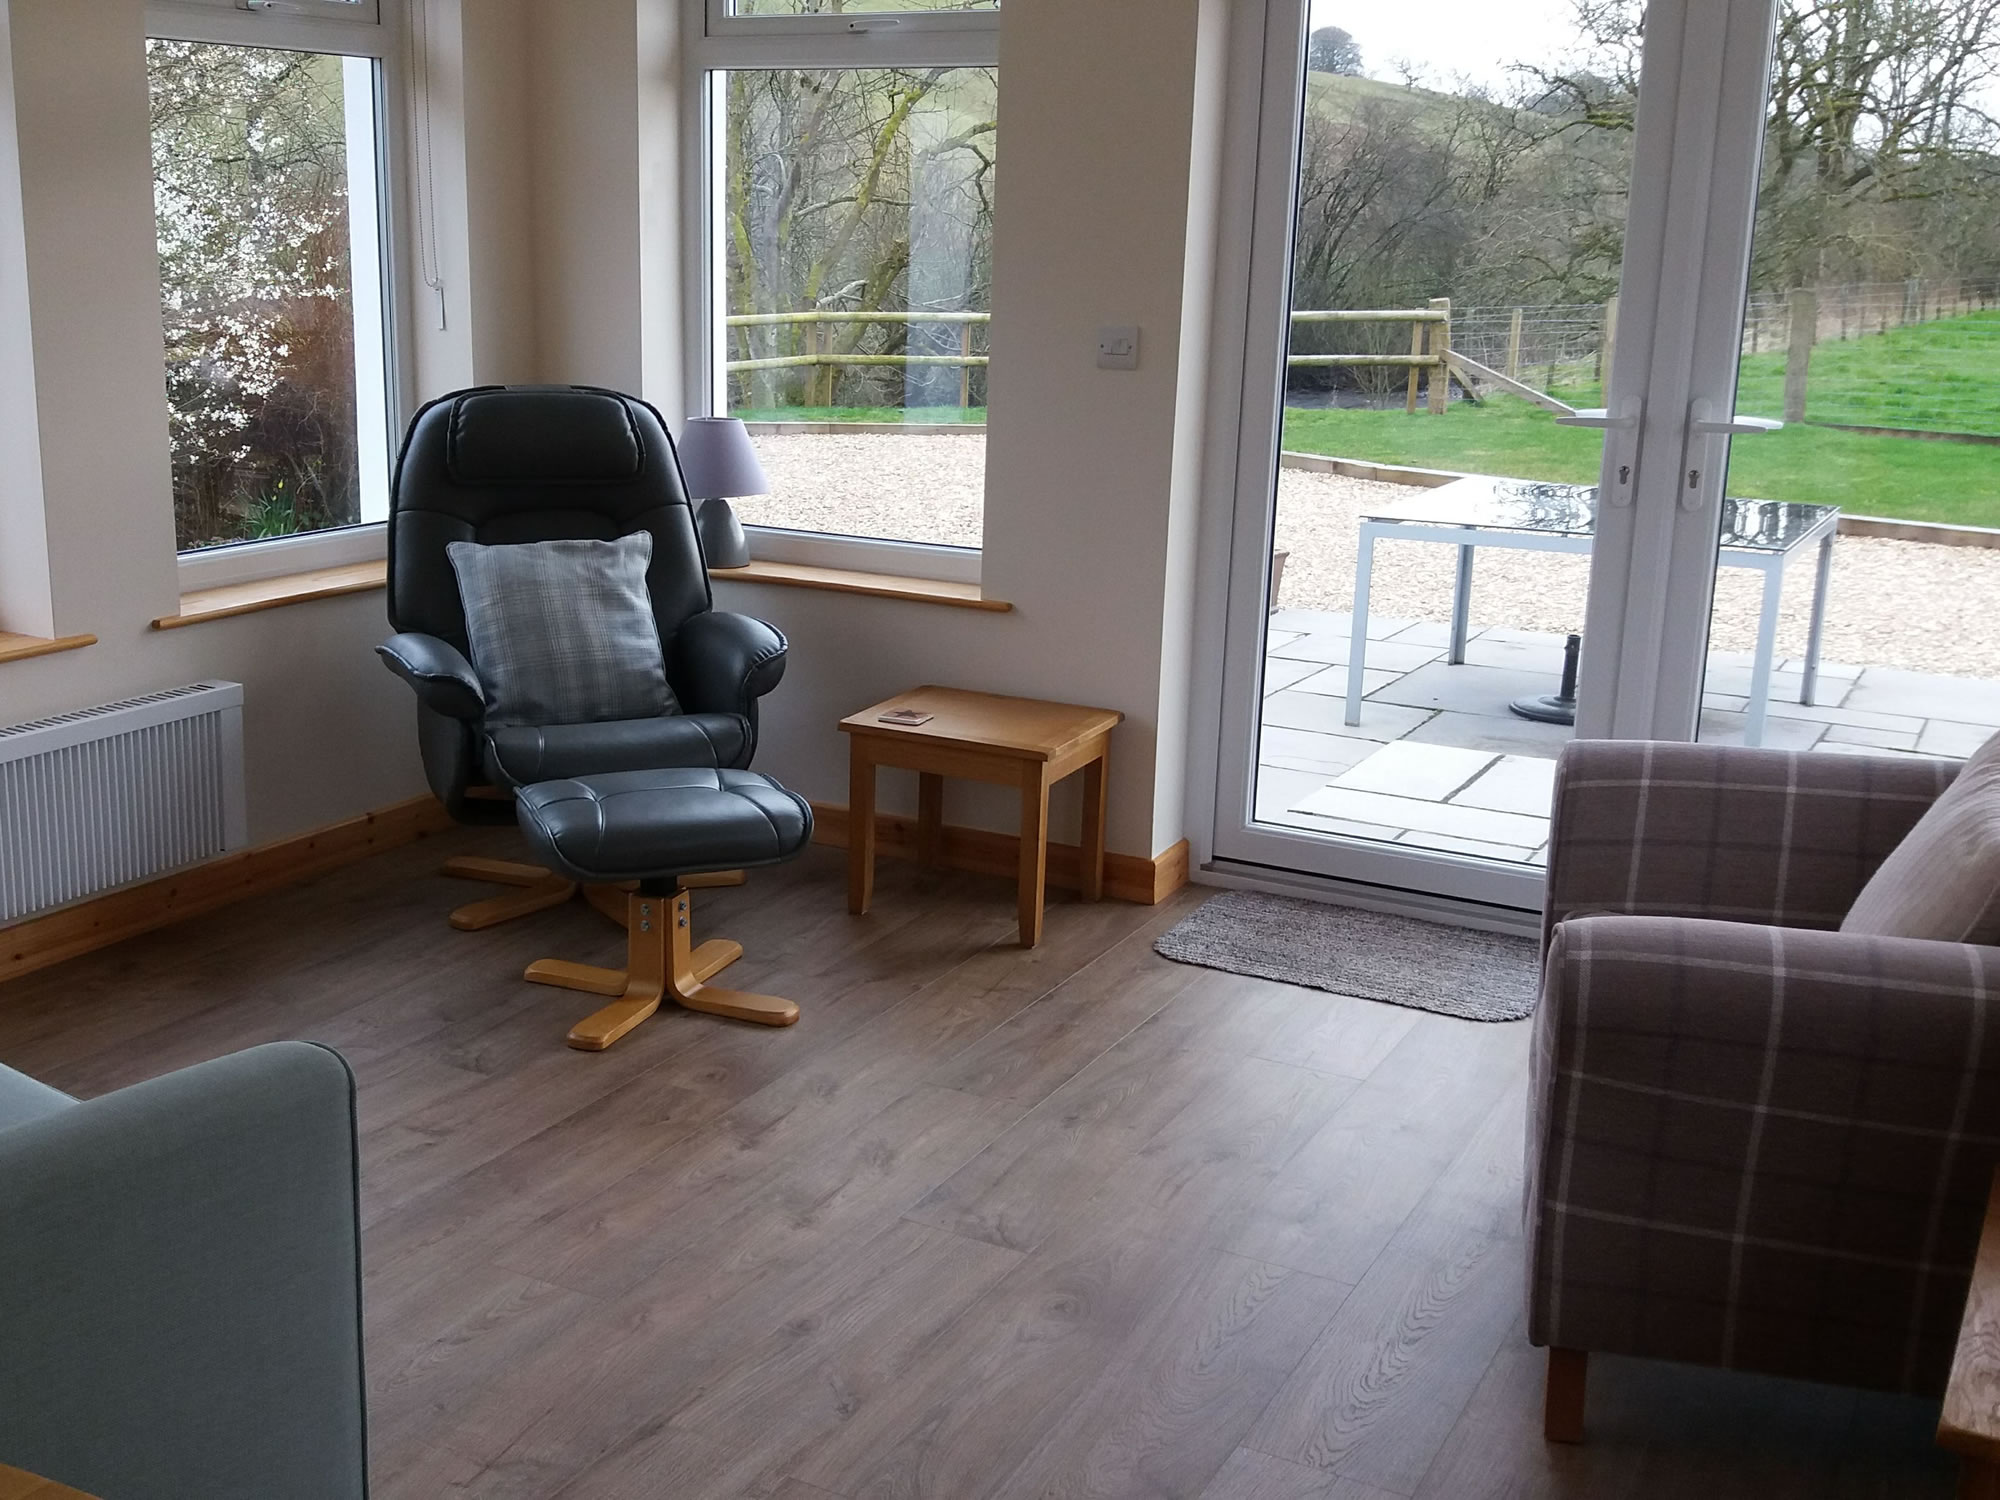 The sunroom of Riverside Self Catering Holiday Cottage in Lockerbie Dumfries and Galloway